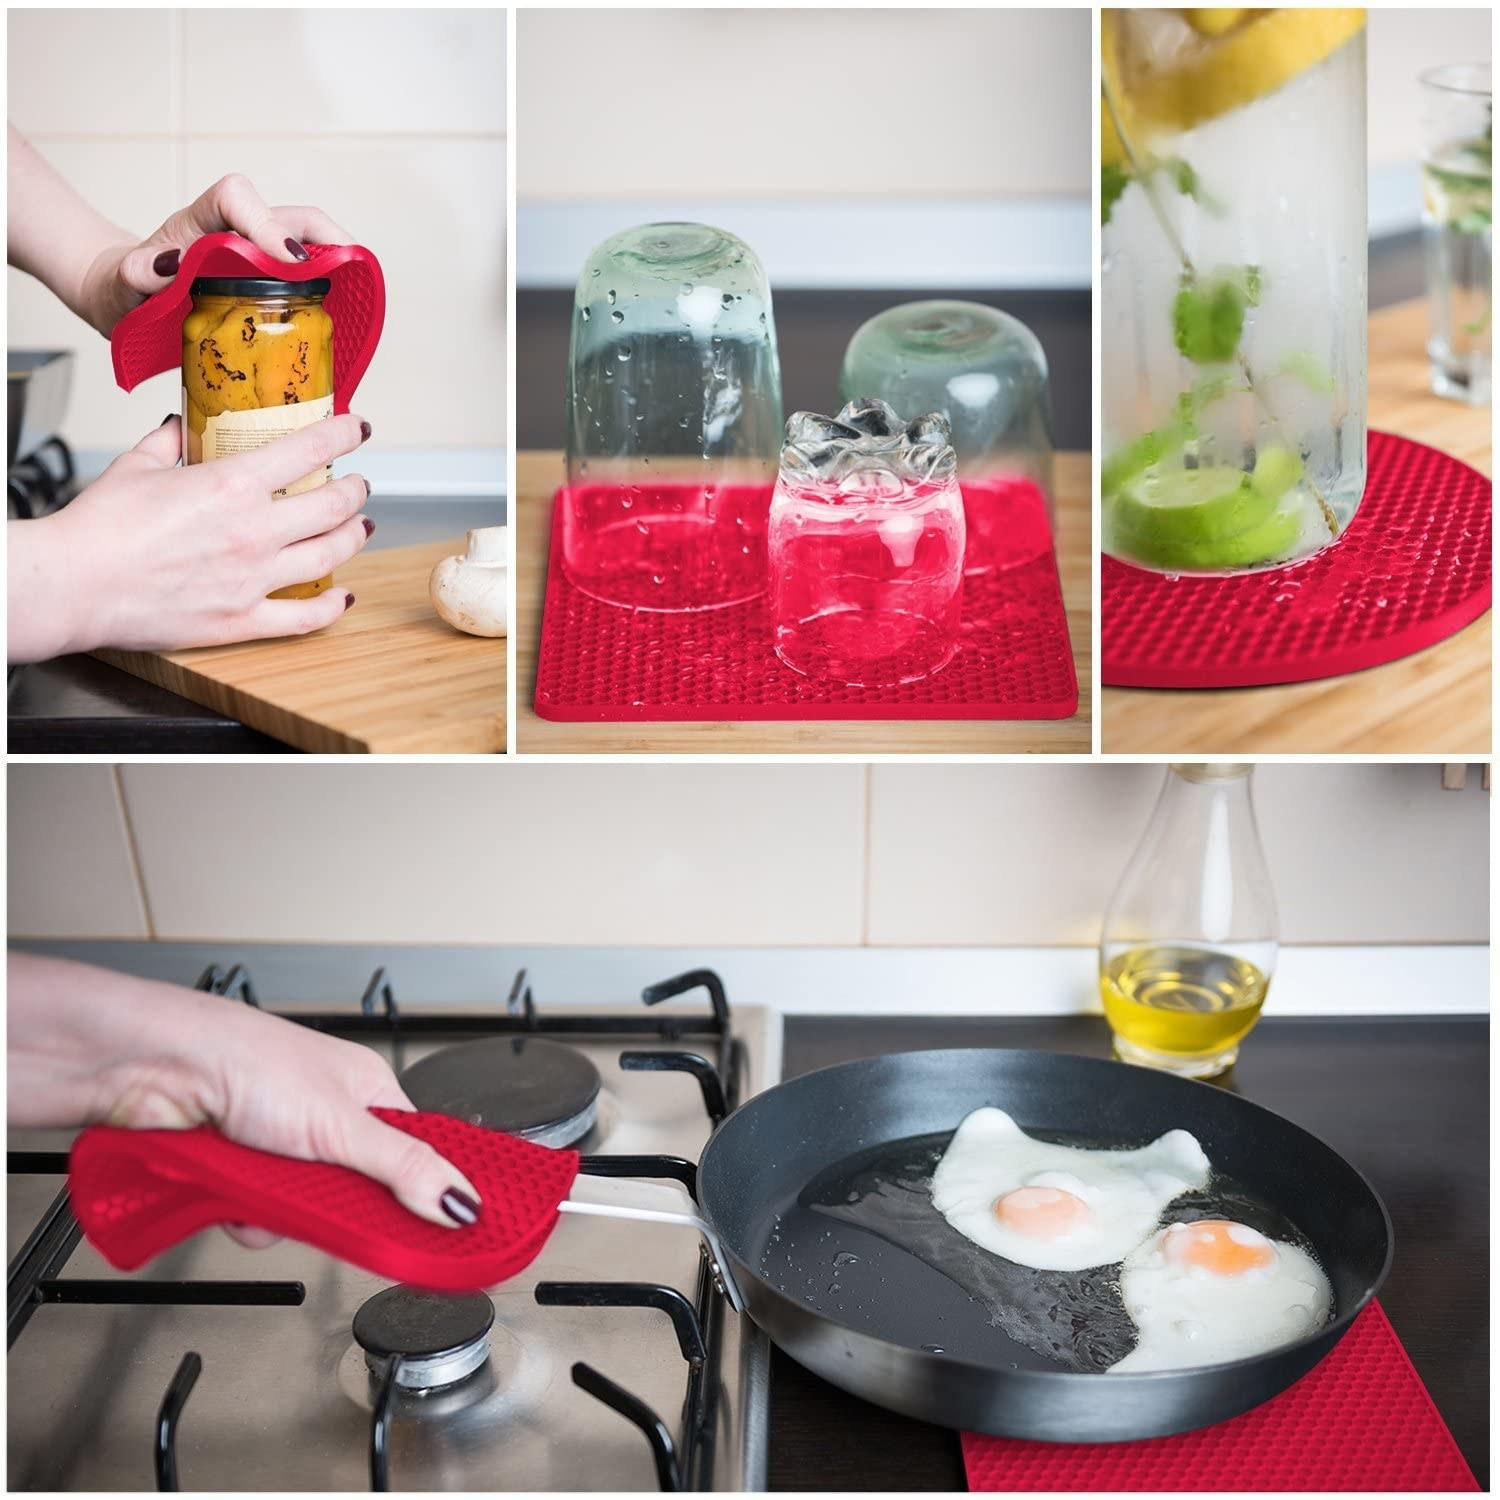 Model's hands using red trivets to open jars, dry glasses, and rest hot pans on